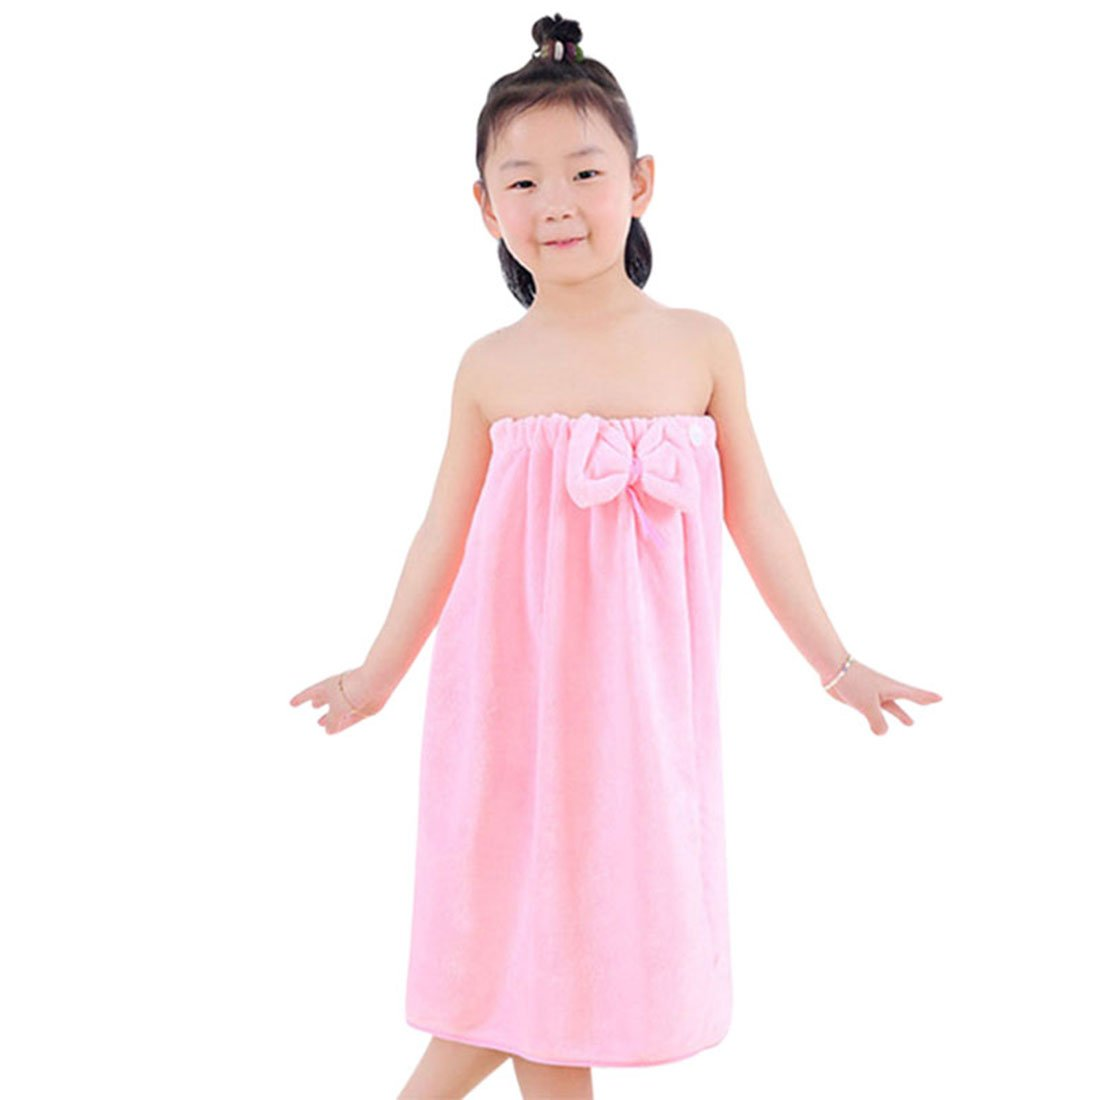 Freahap Kids Bathrobe Girls Bath Towel Wrap Shower Skirt Tube Dressing Beautylife88